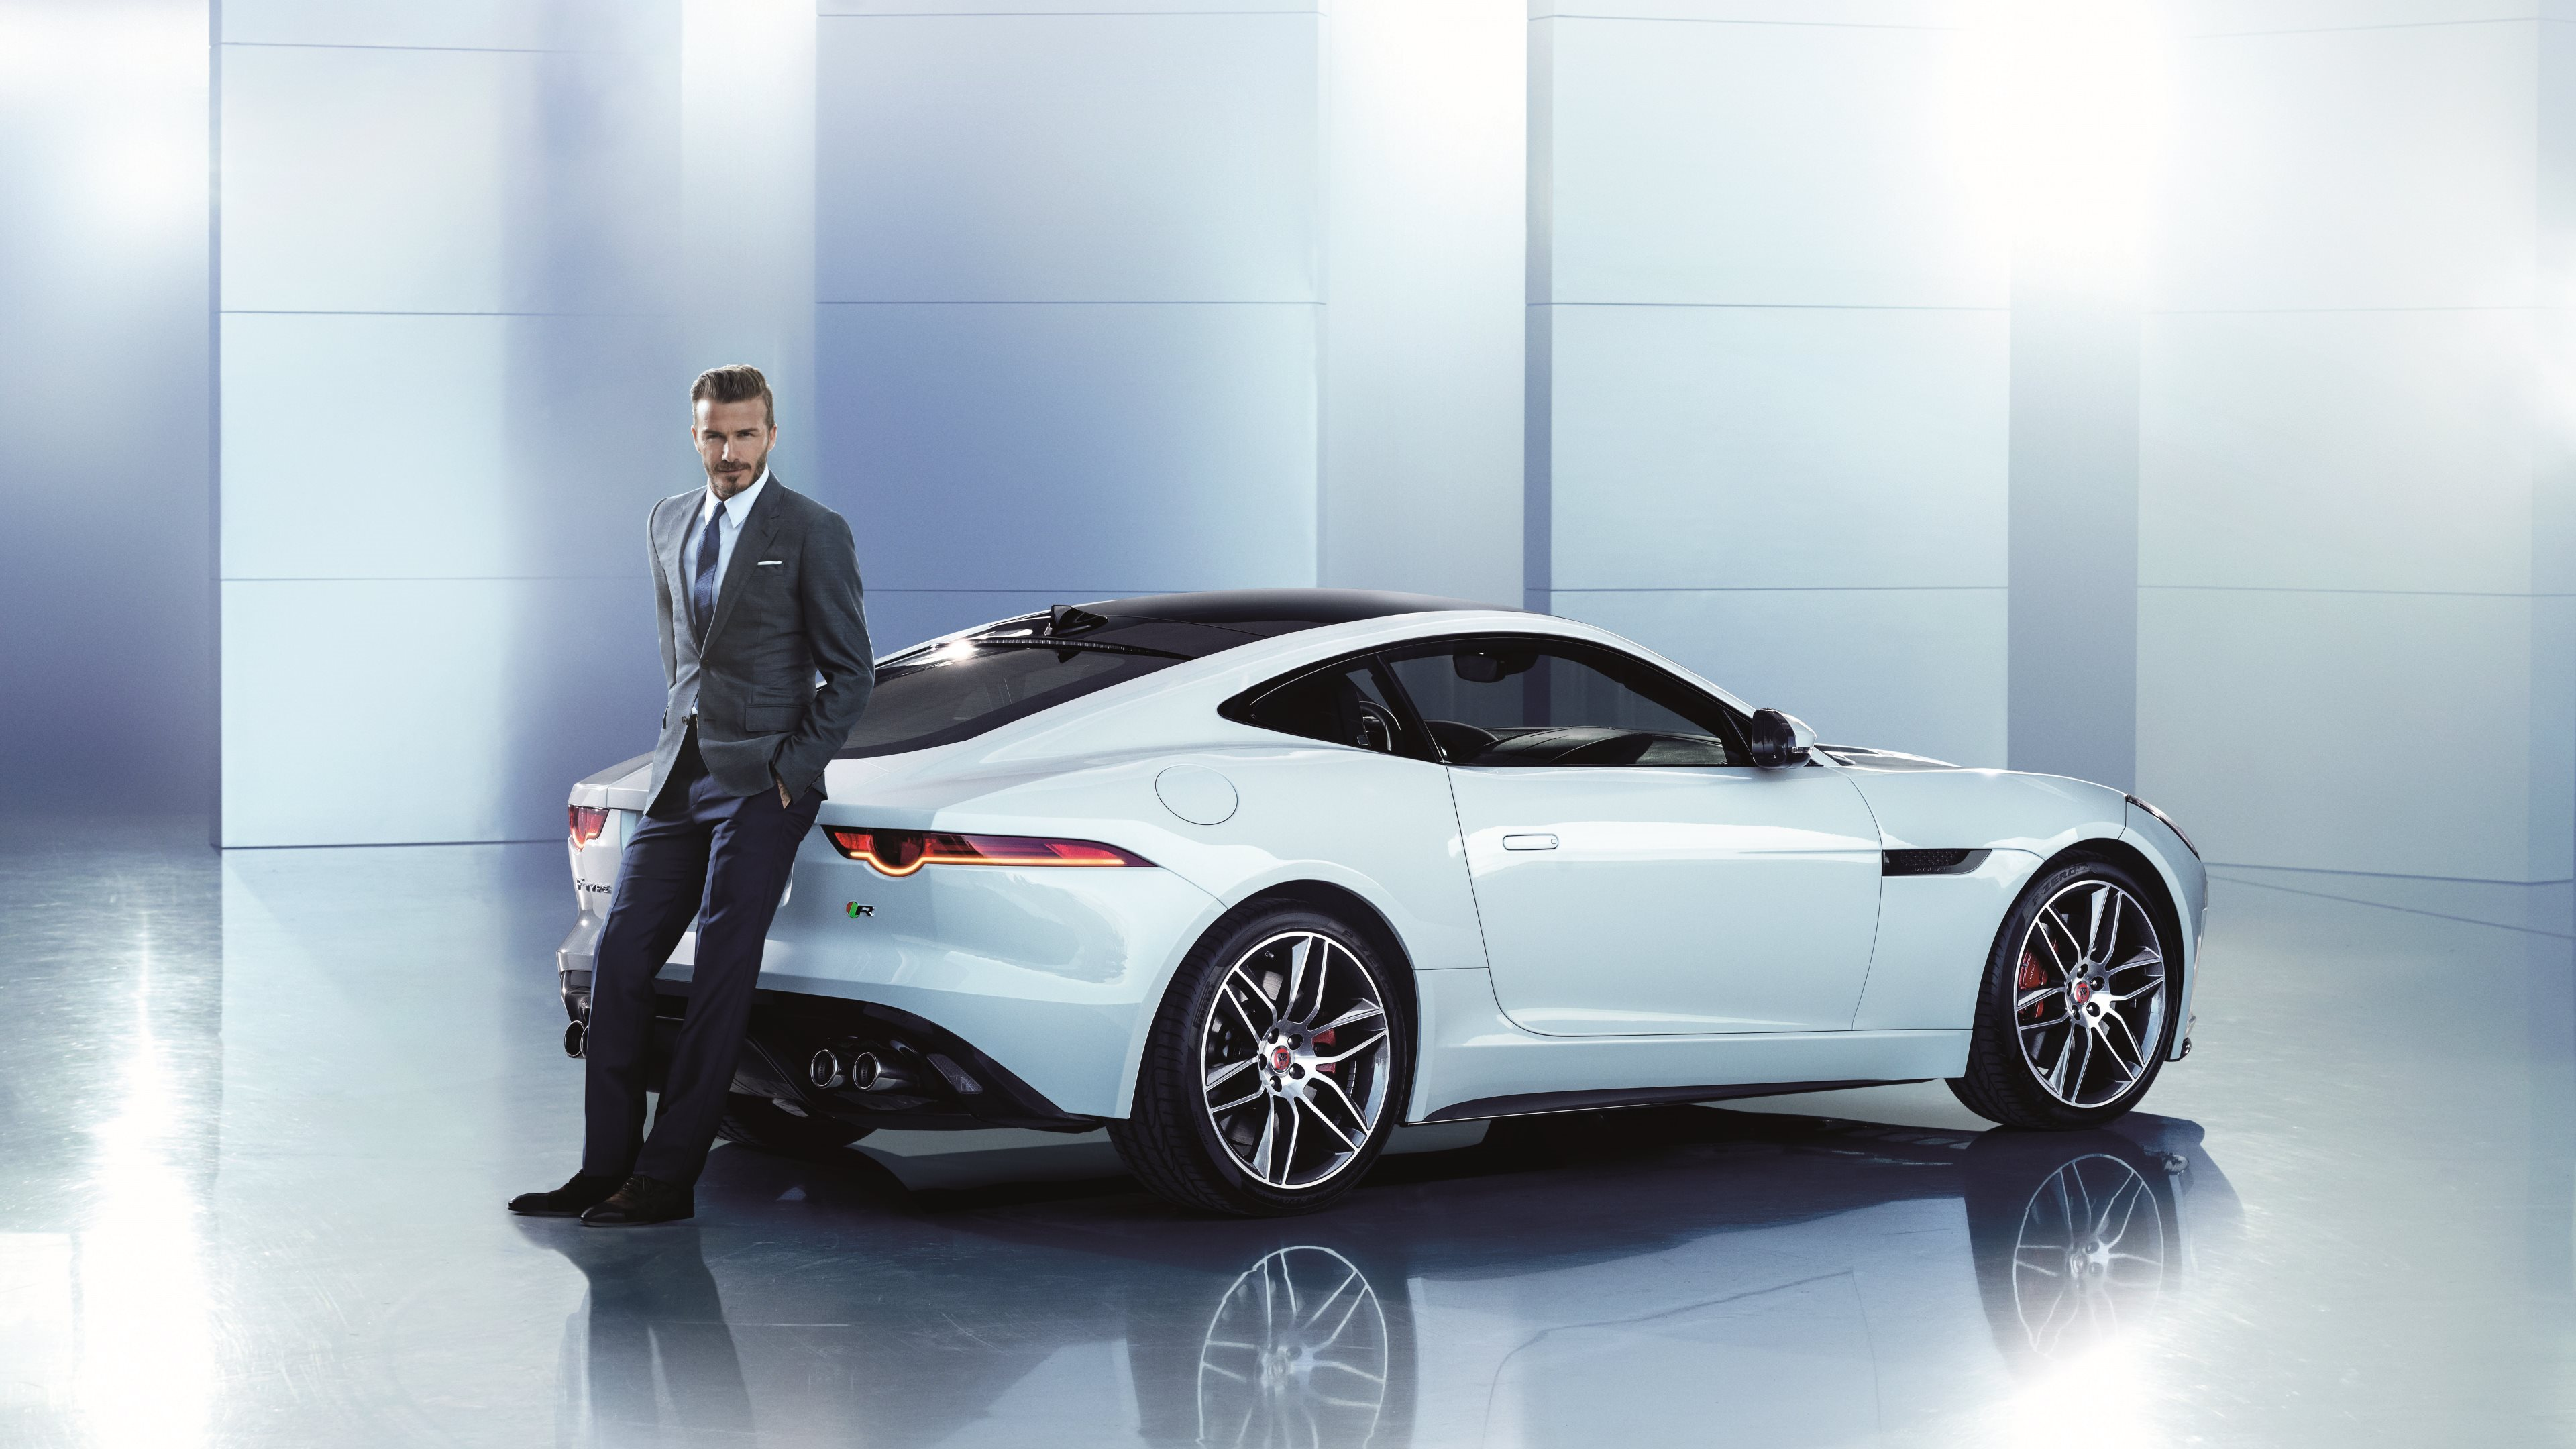 Vehicles   Jaguar F Type Jaguar Cars Car White Car Sport Car David Beckham  Wallpaper